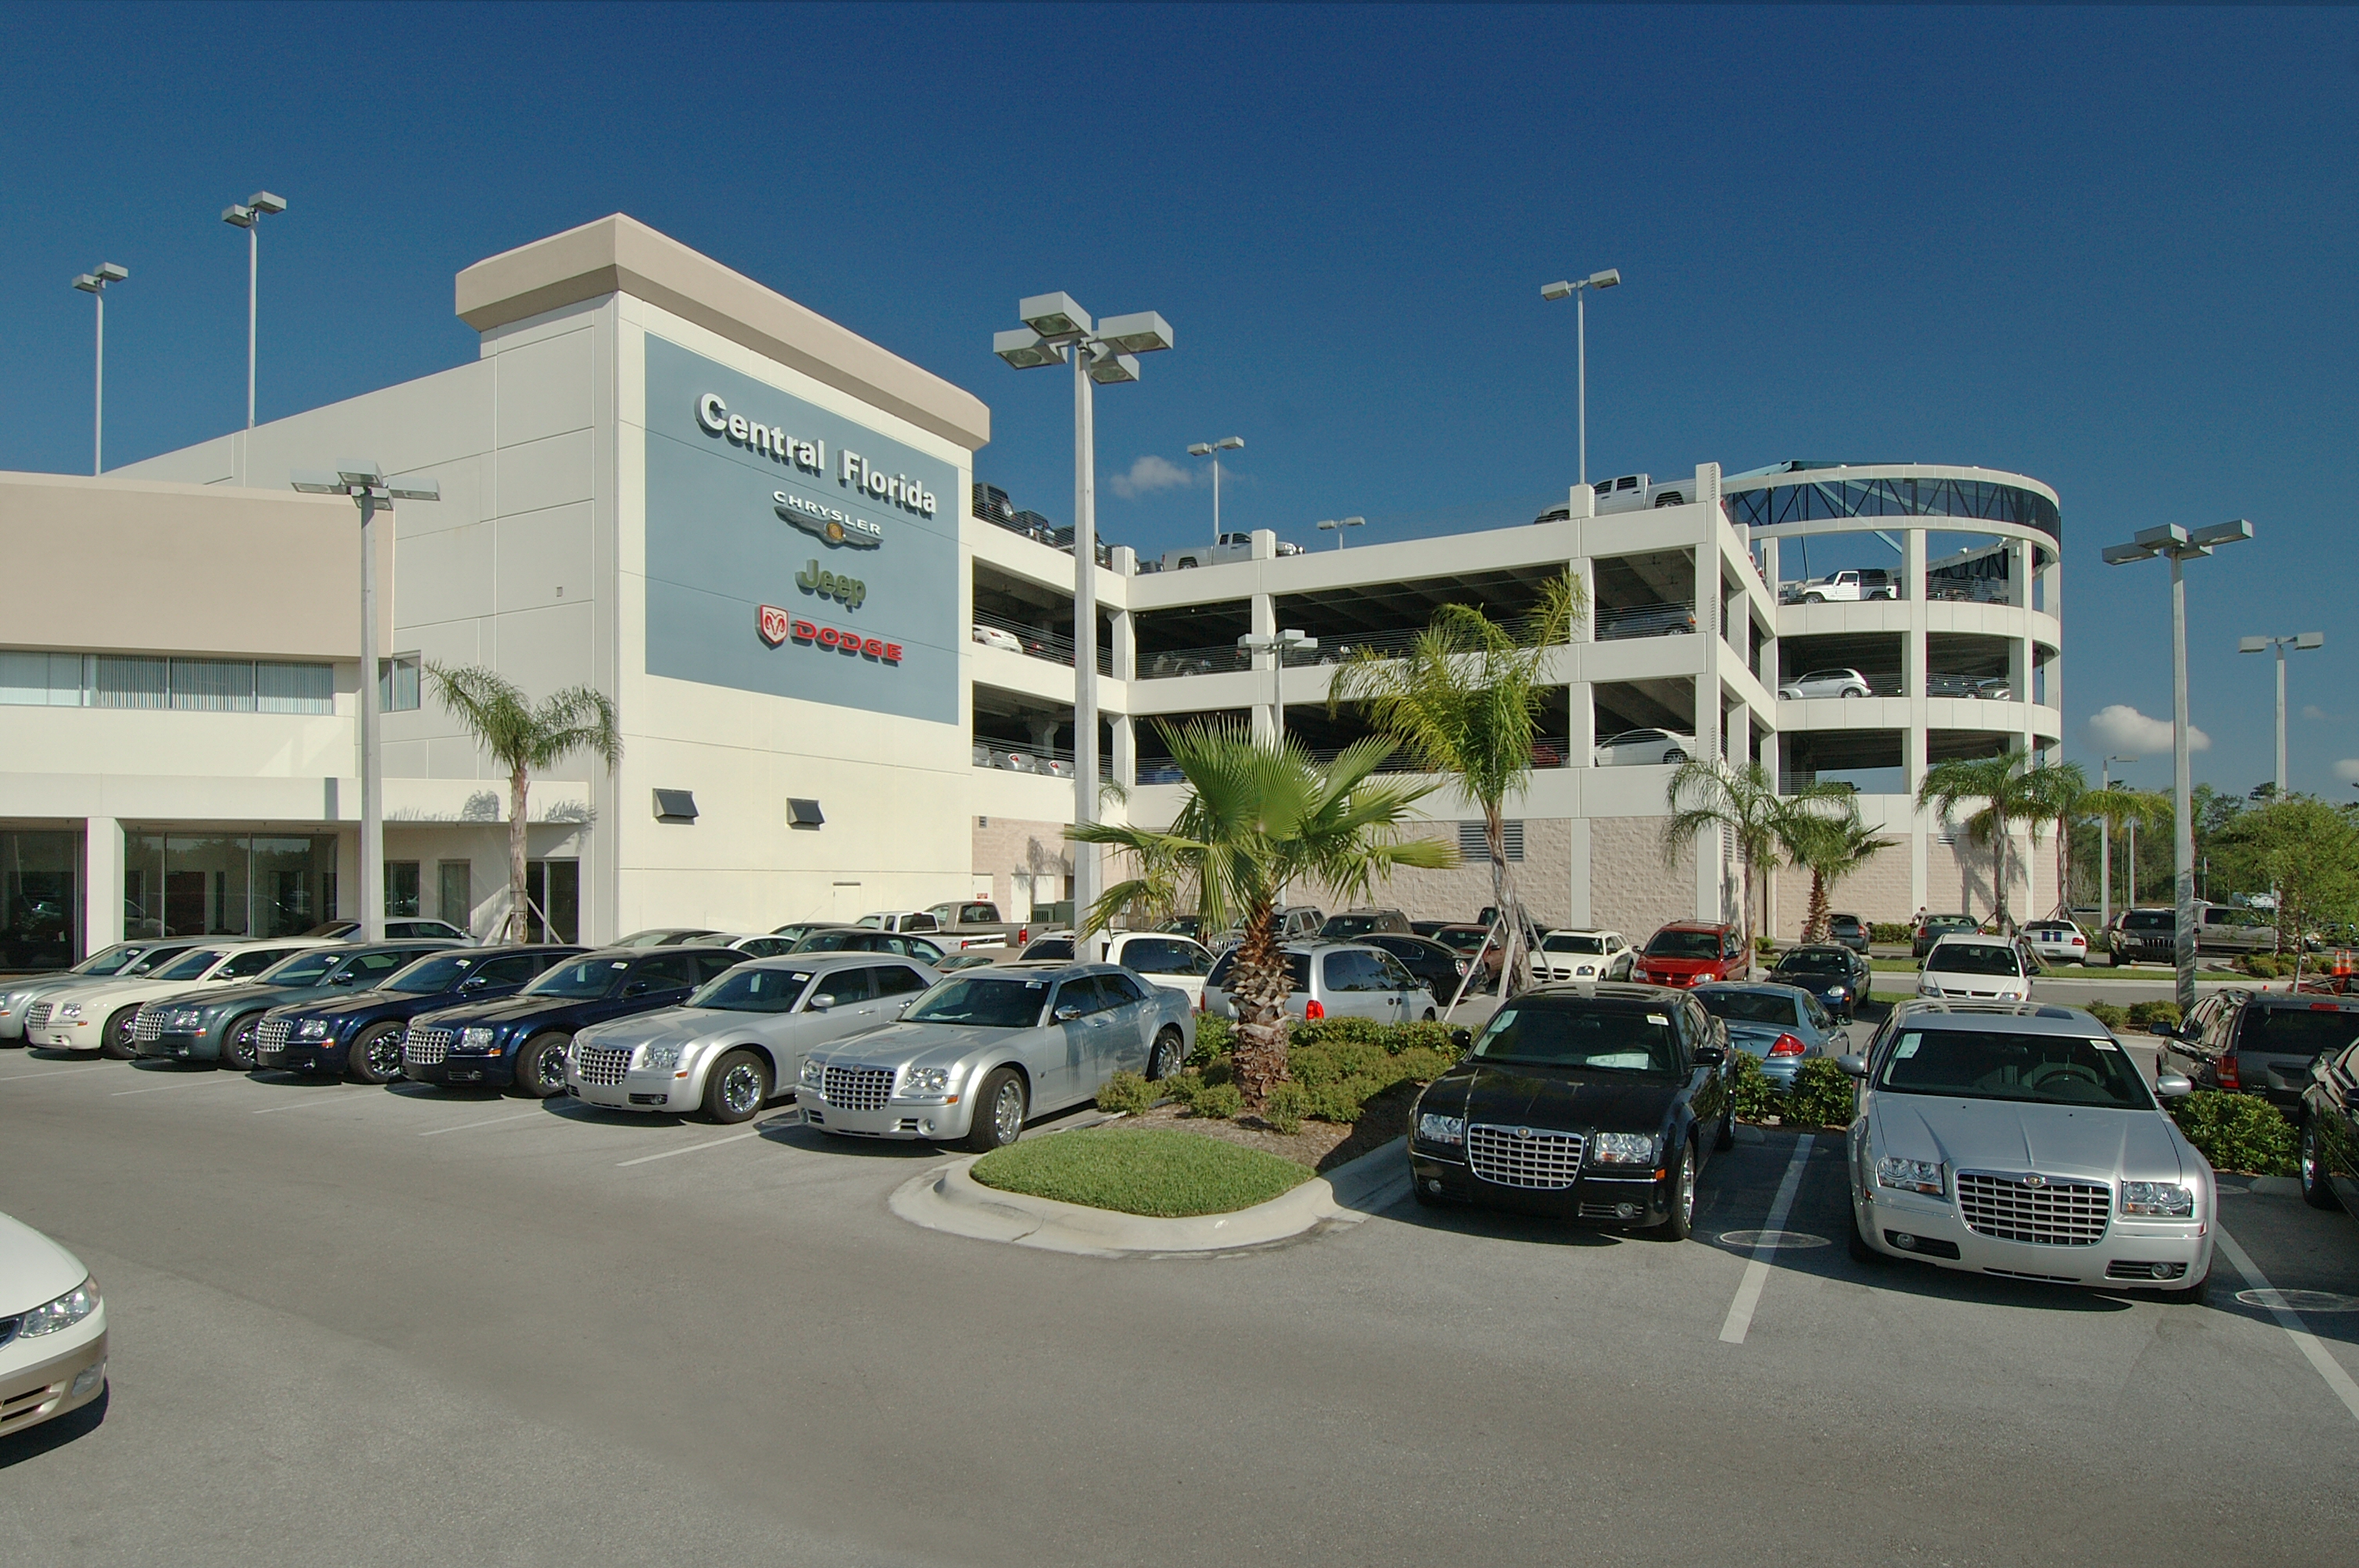 Precast Concrete Supplier Tampa Florida Coreslab Structures - Jeep chrysler dealerships